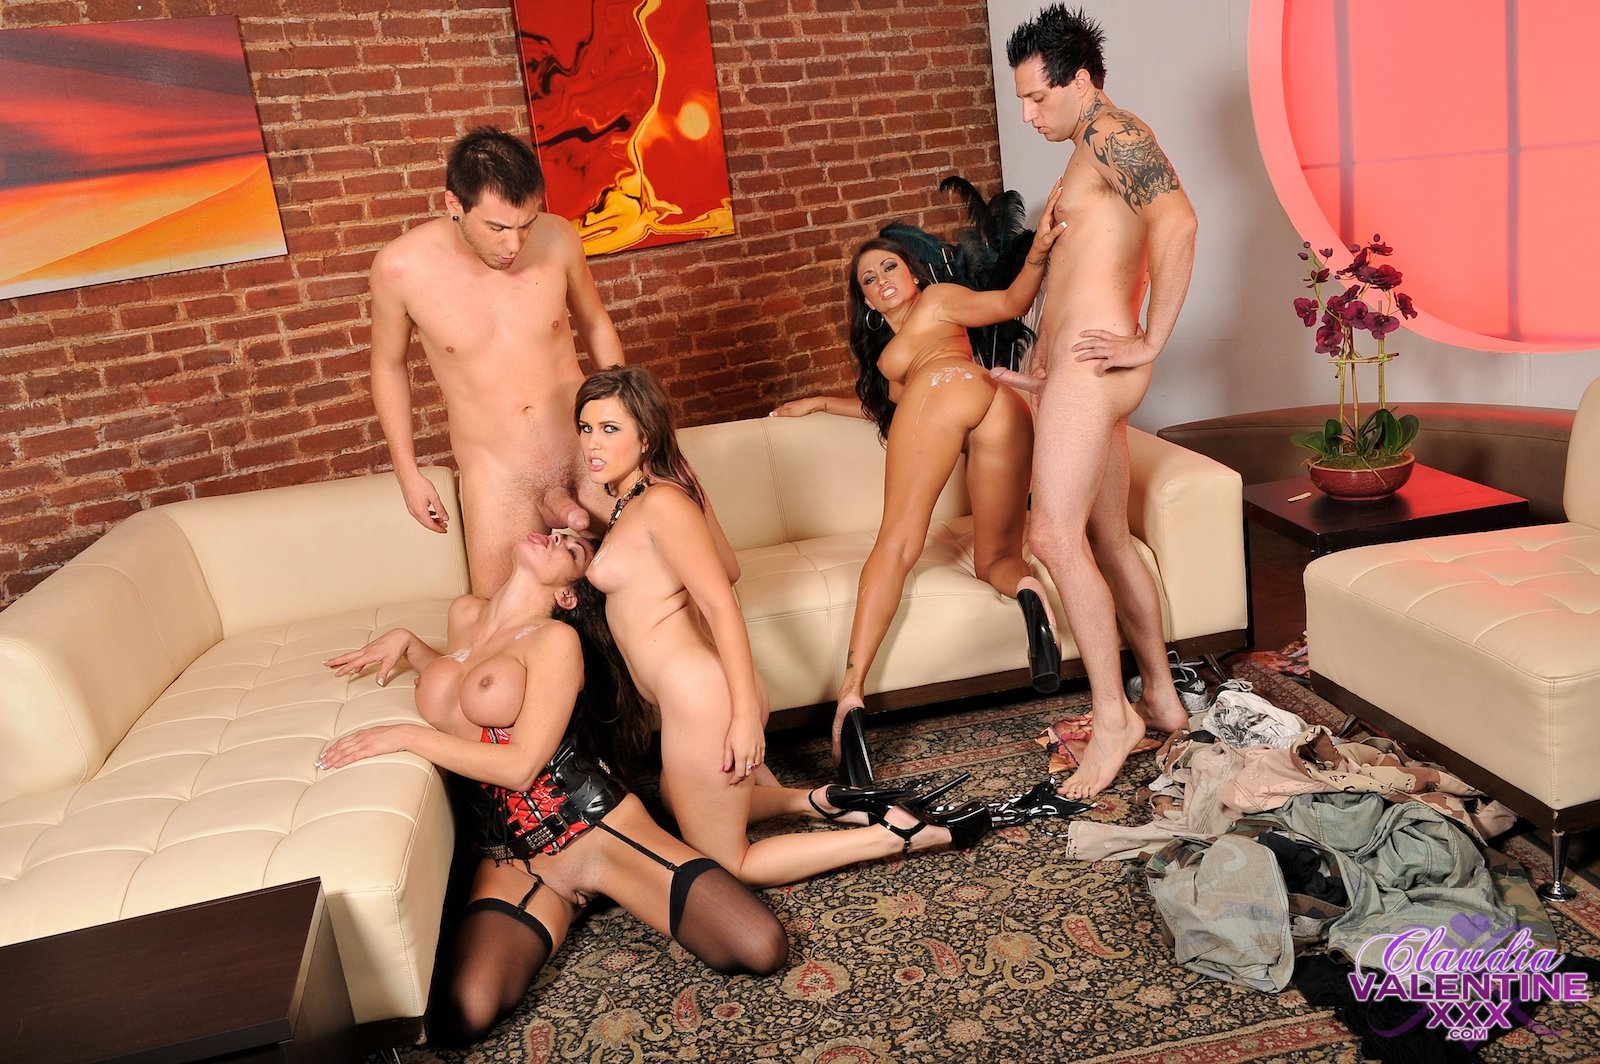 Group sex on tumblr Drunk wife fucks coworkers at party